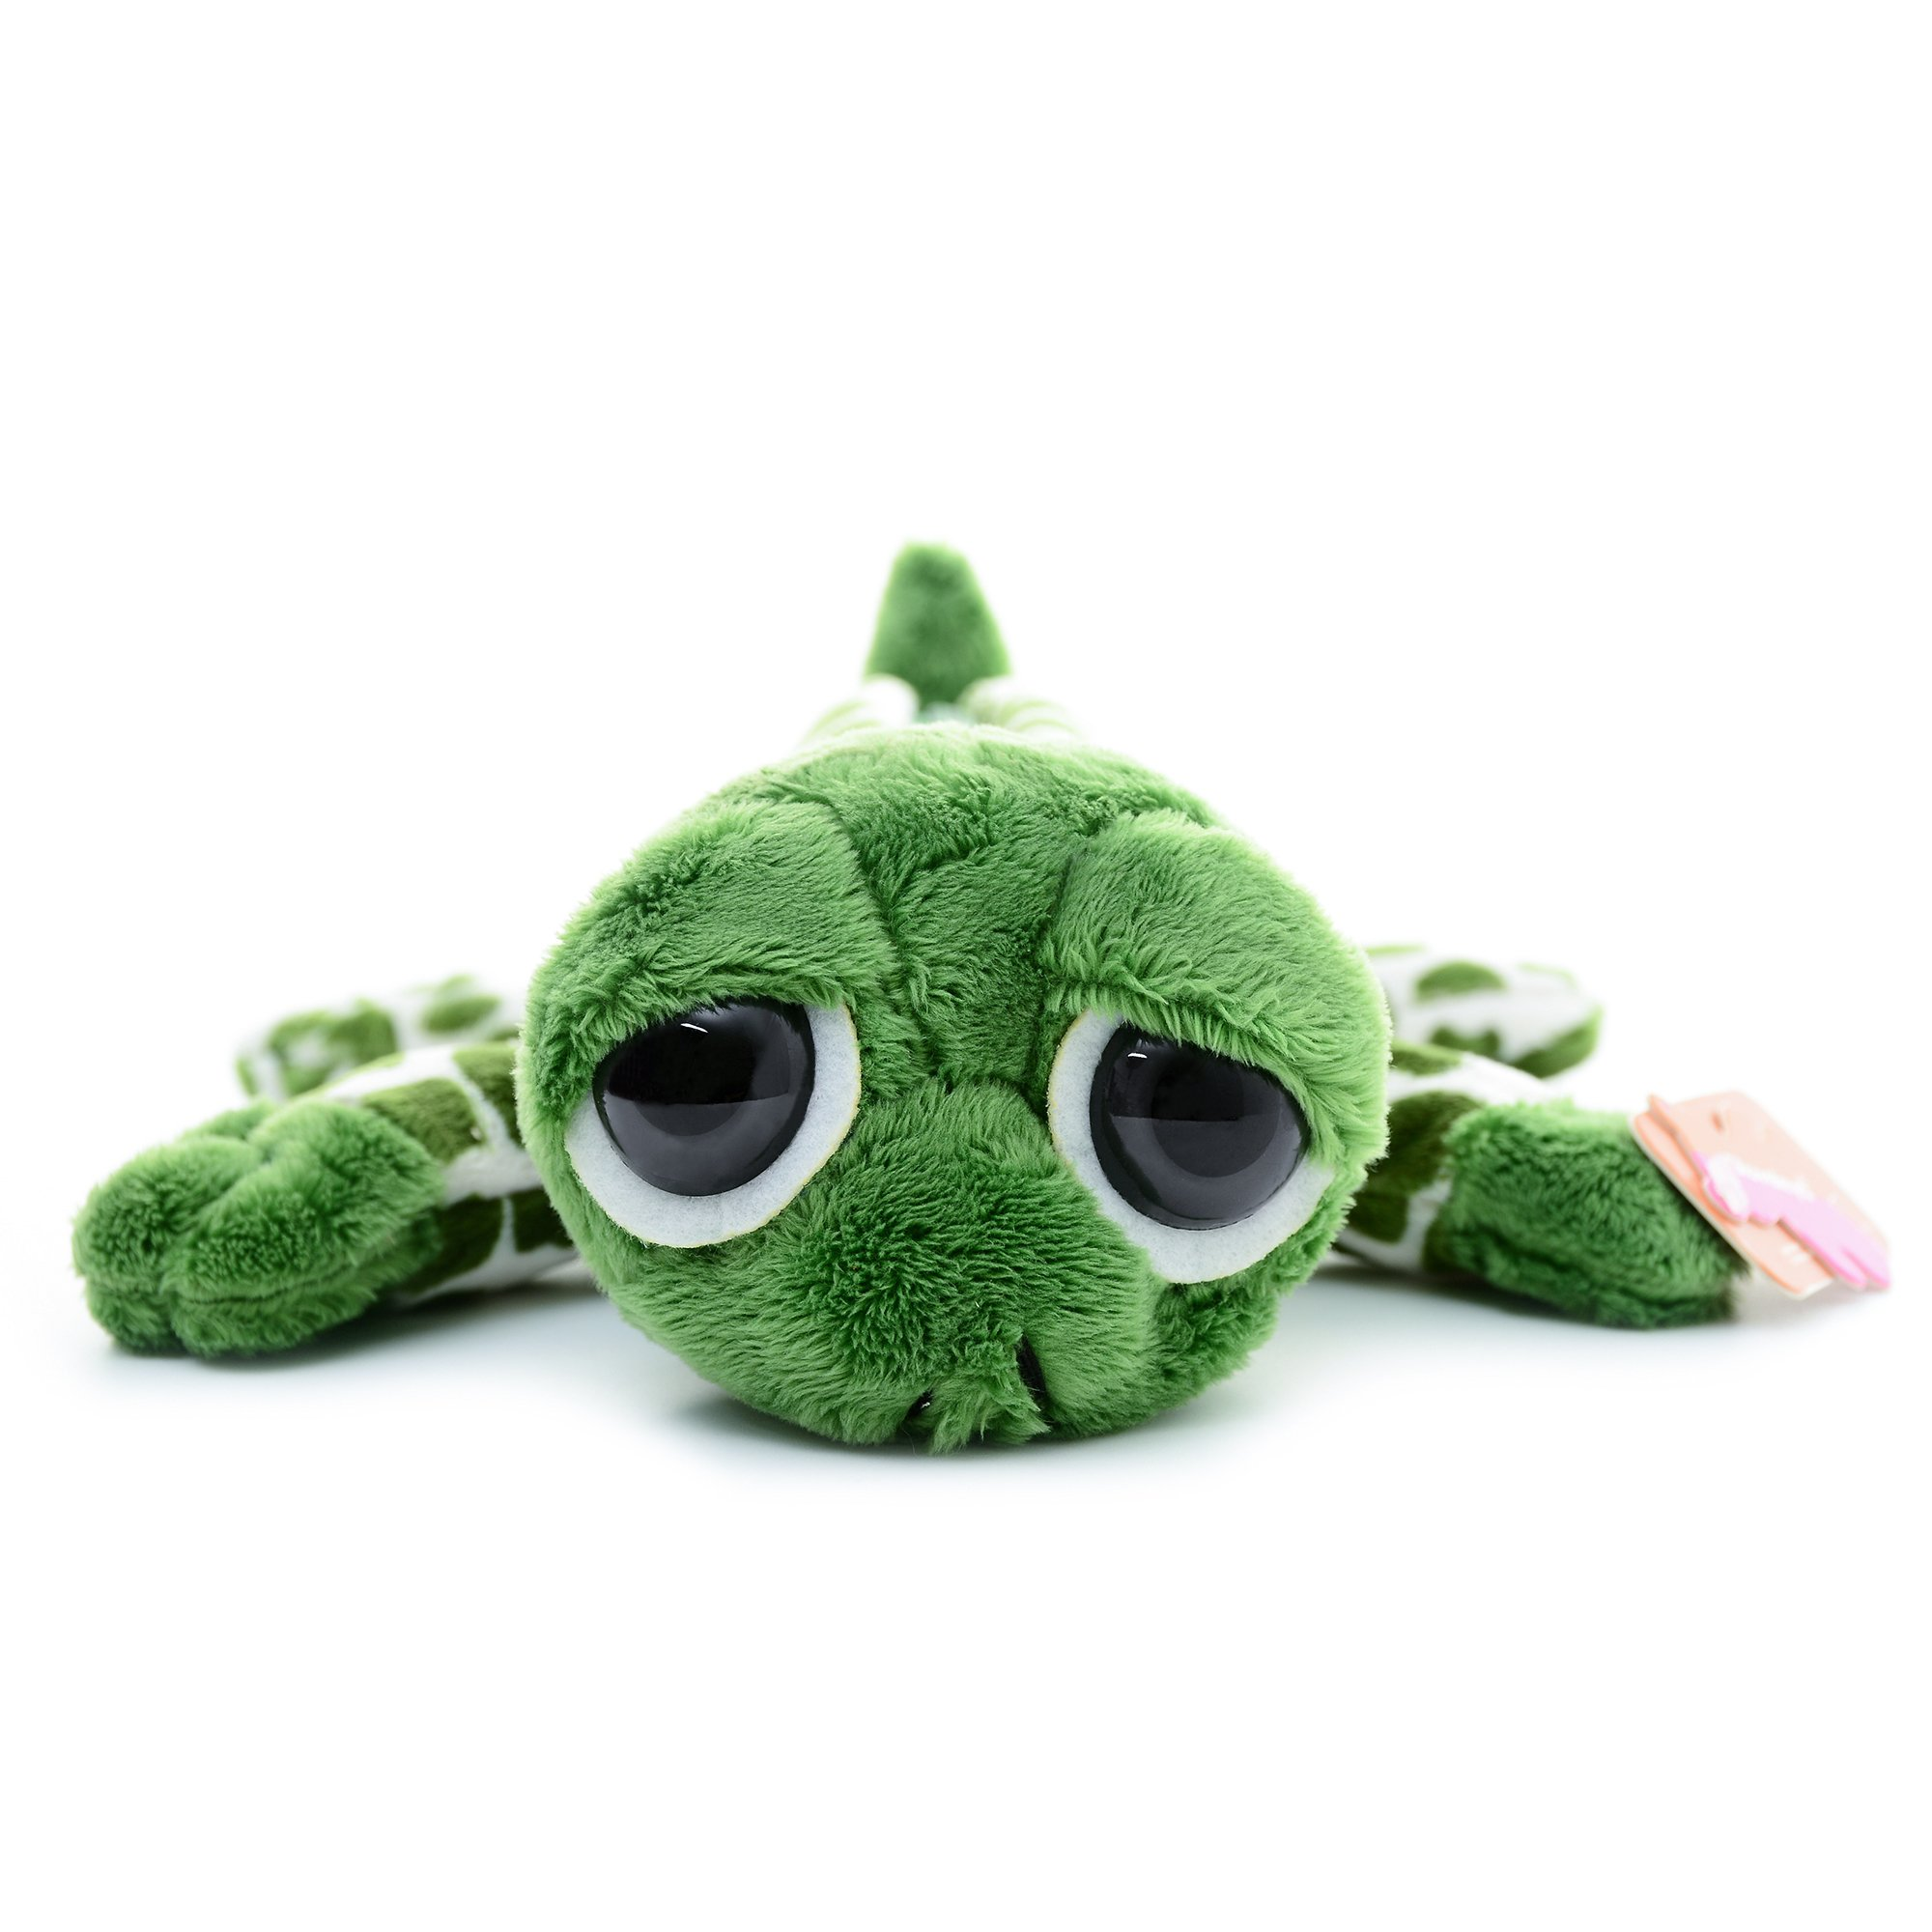 Cartoon Animal Plush School Pencil Bag Pen Case Comestic Makeup Pouch 11'' (turtle) by Gloveleya (Image #5)